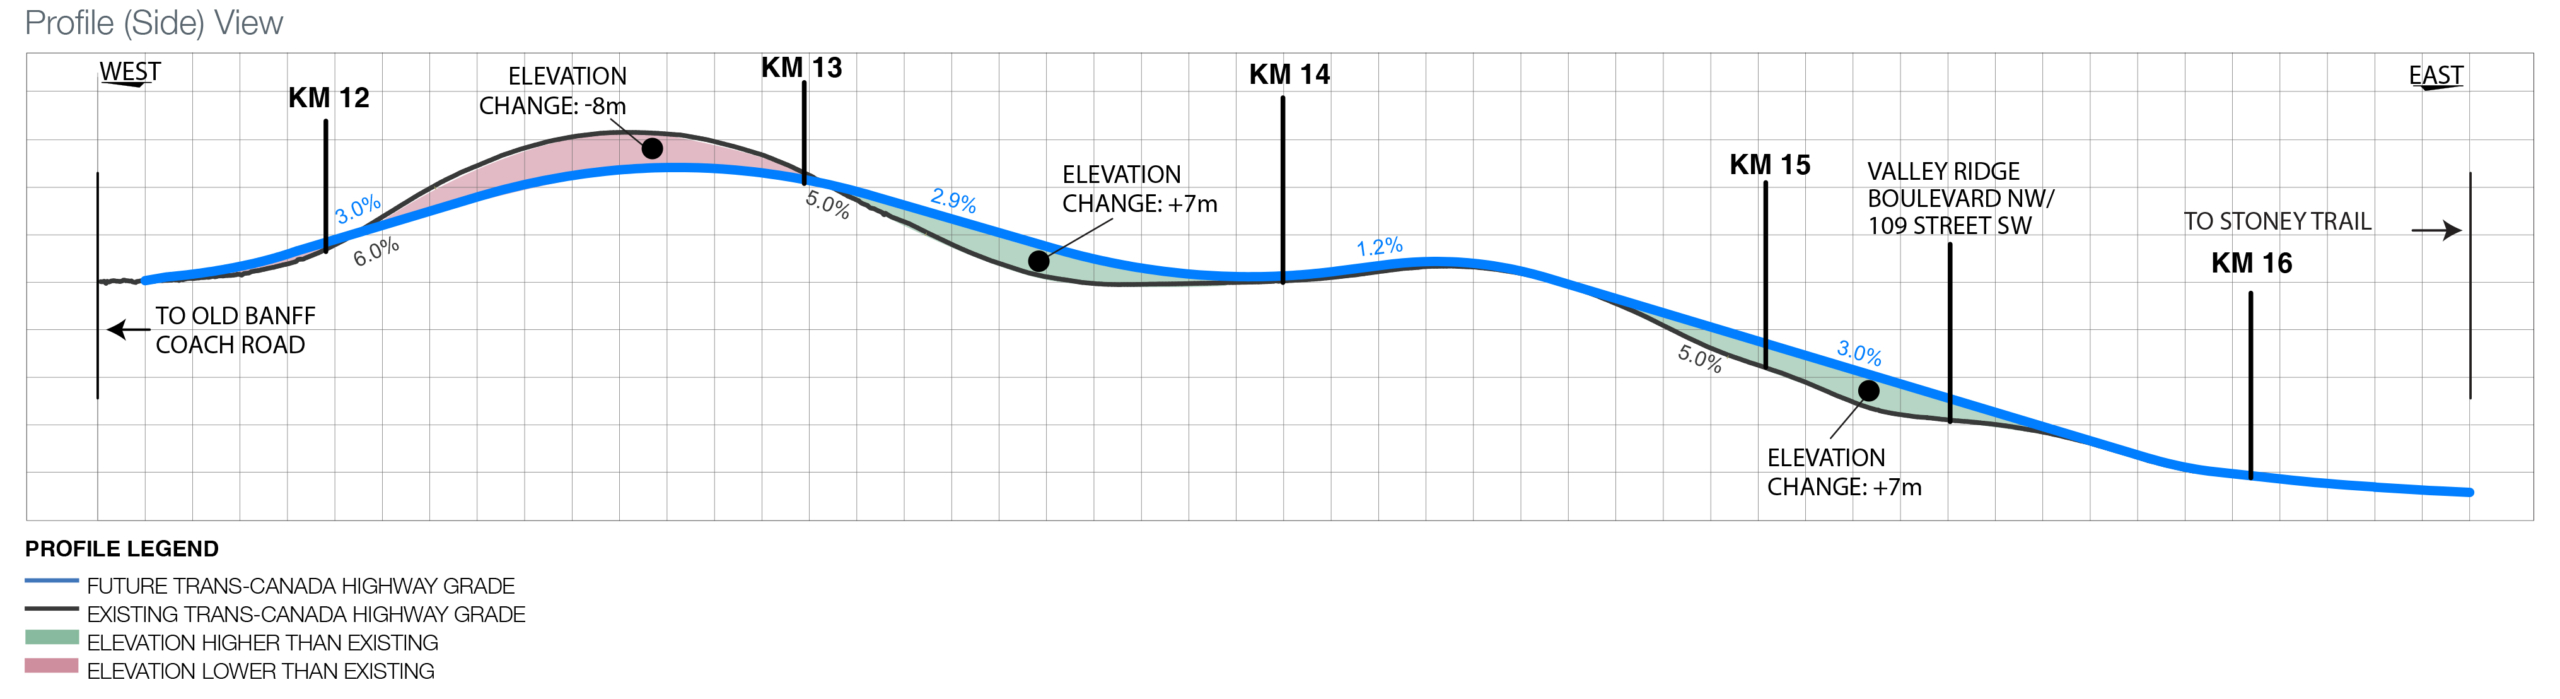 West Trans-Canada Highway profile view